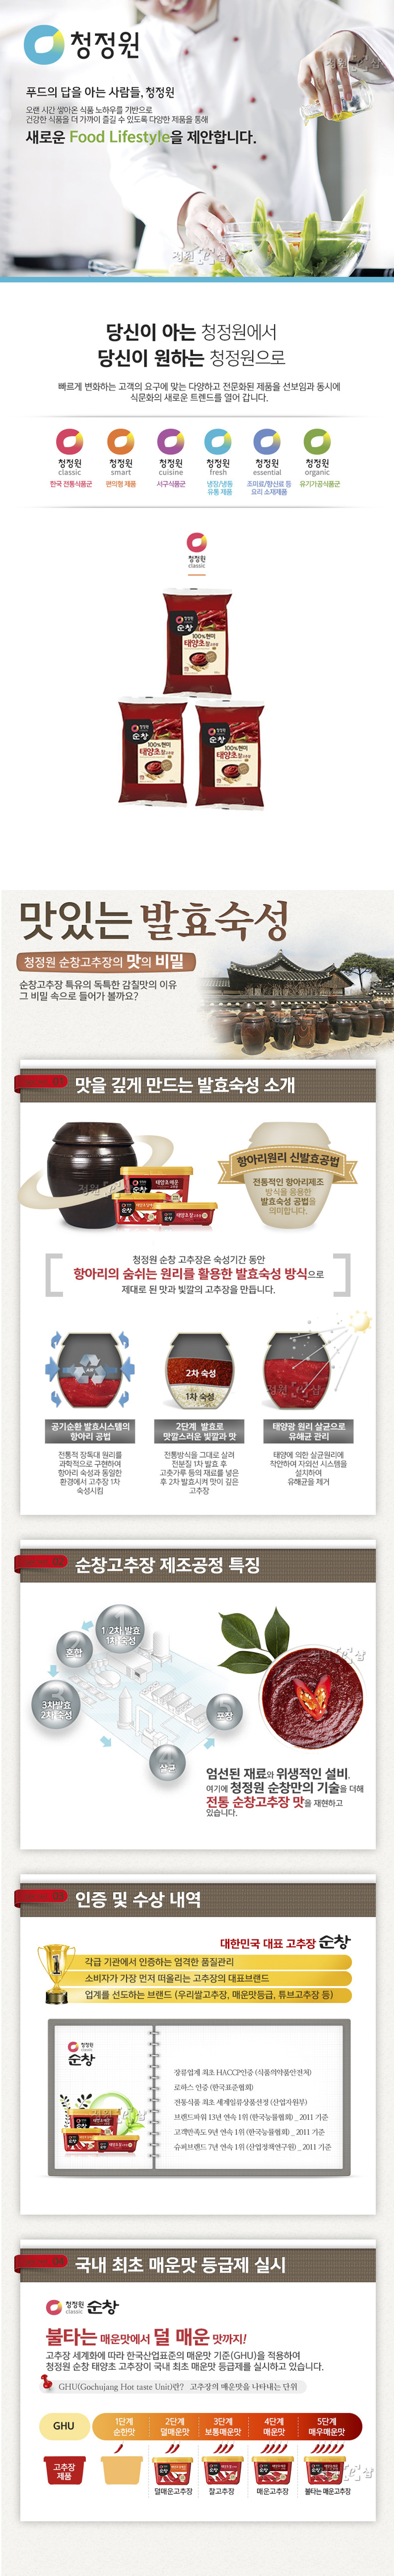 [ chungjungone ] GOCHUJANG MEDIUM HOT 500g X 3pcs